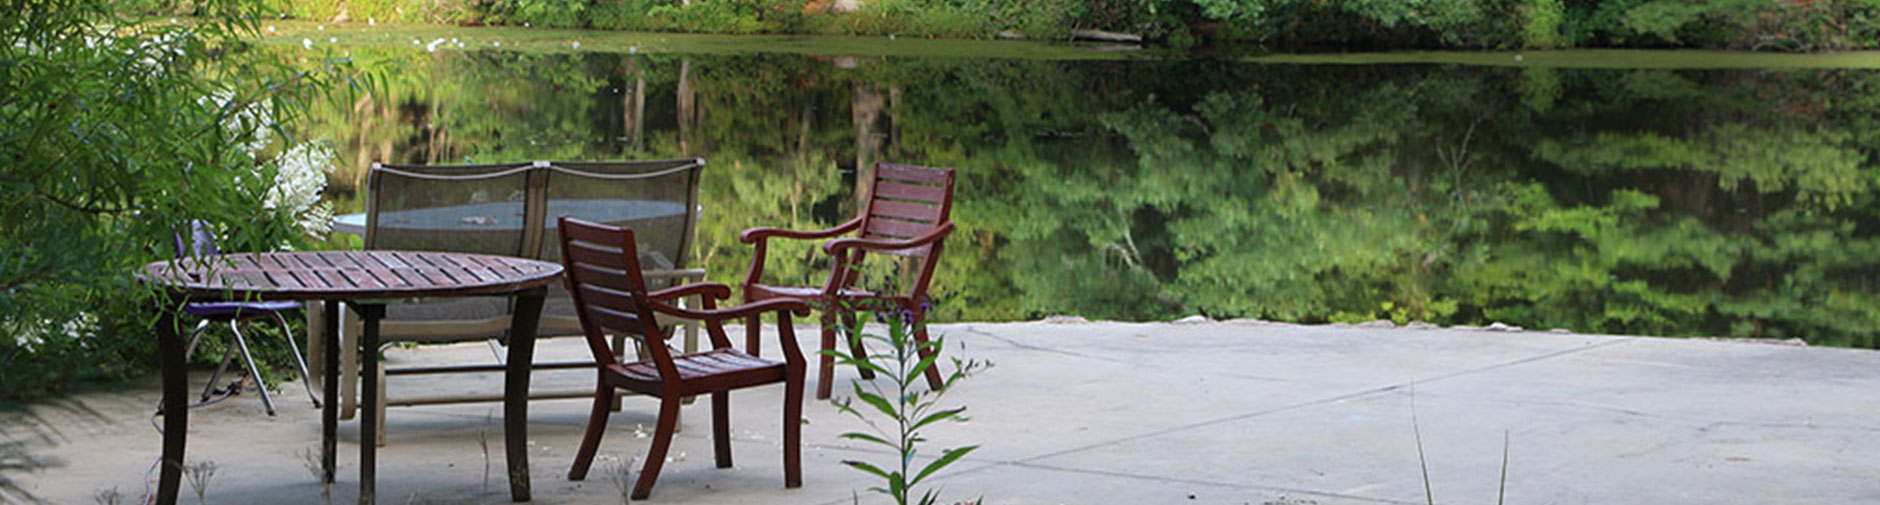 Tables and chairs on lake